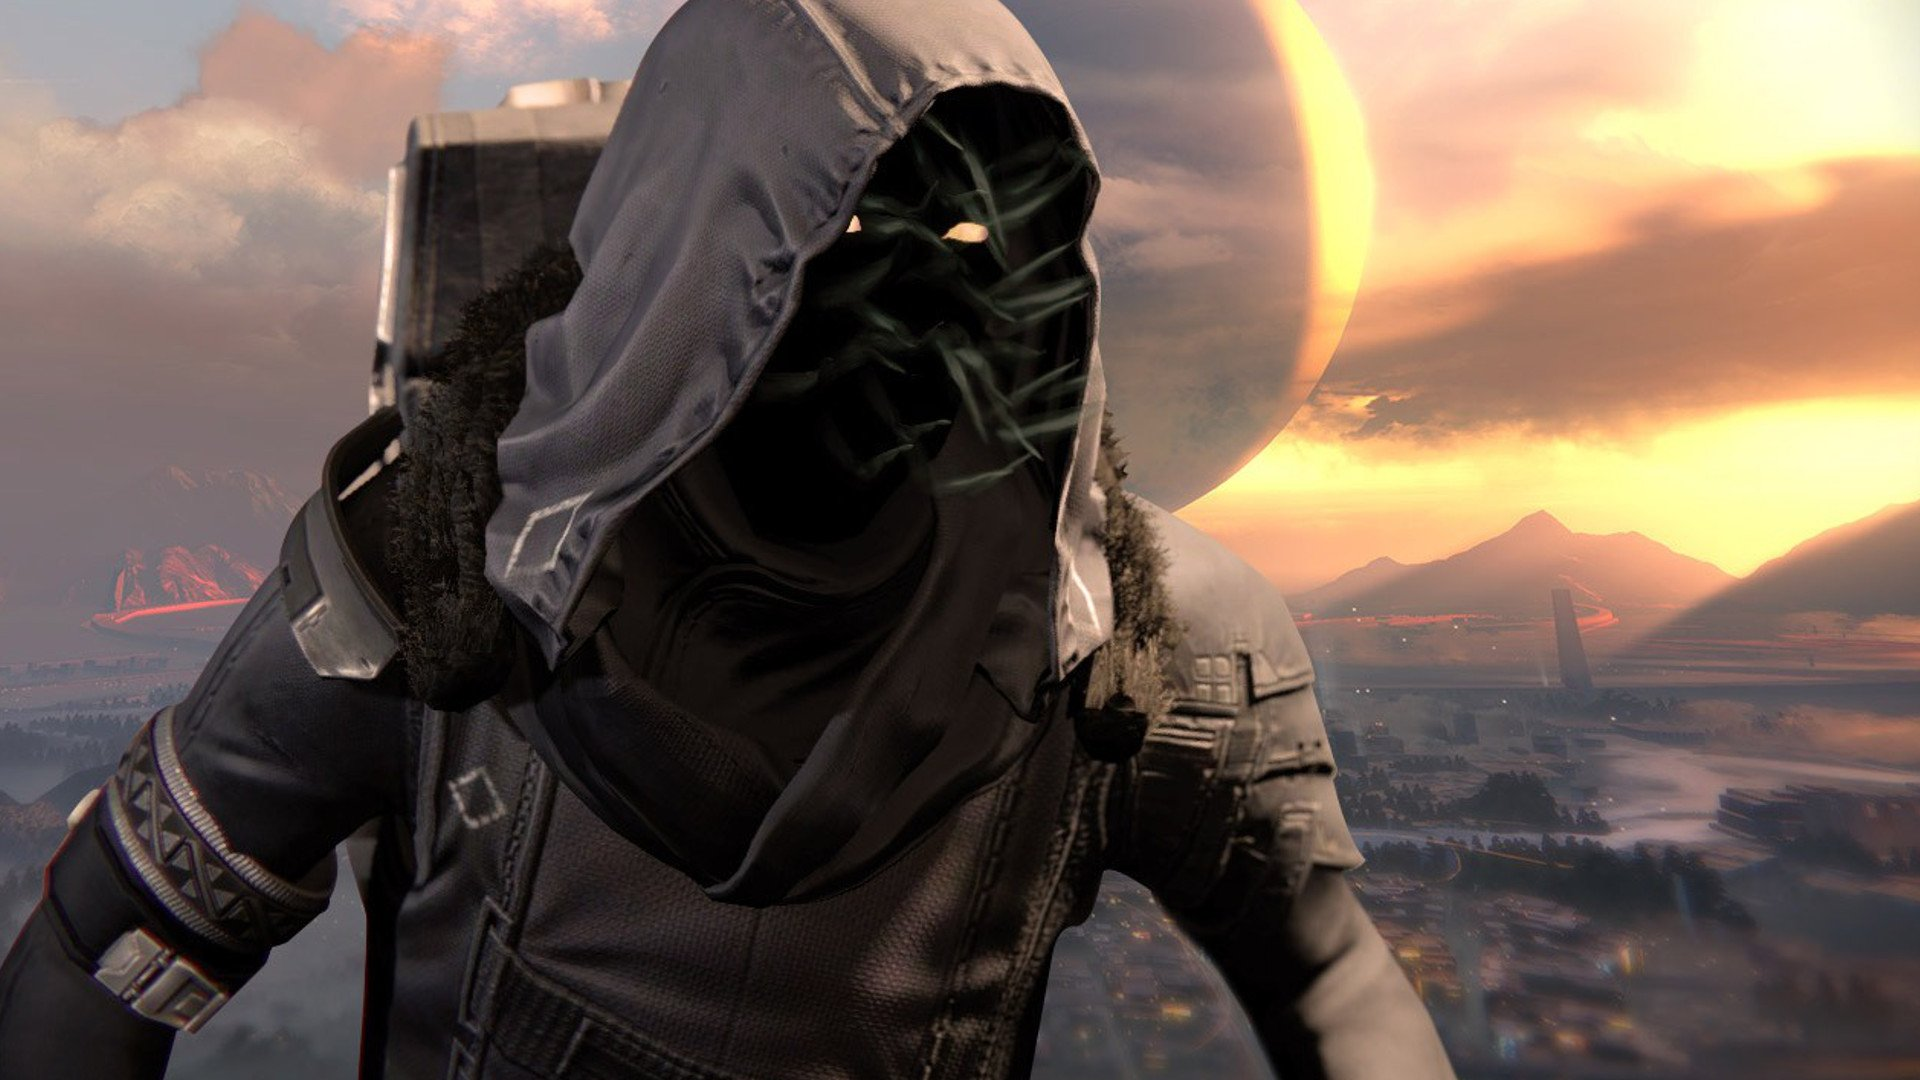 During the week of March 1, Xur can be found in a tree near Watcher's Grave in Destiny 2.